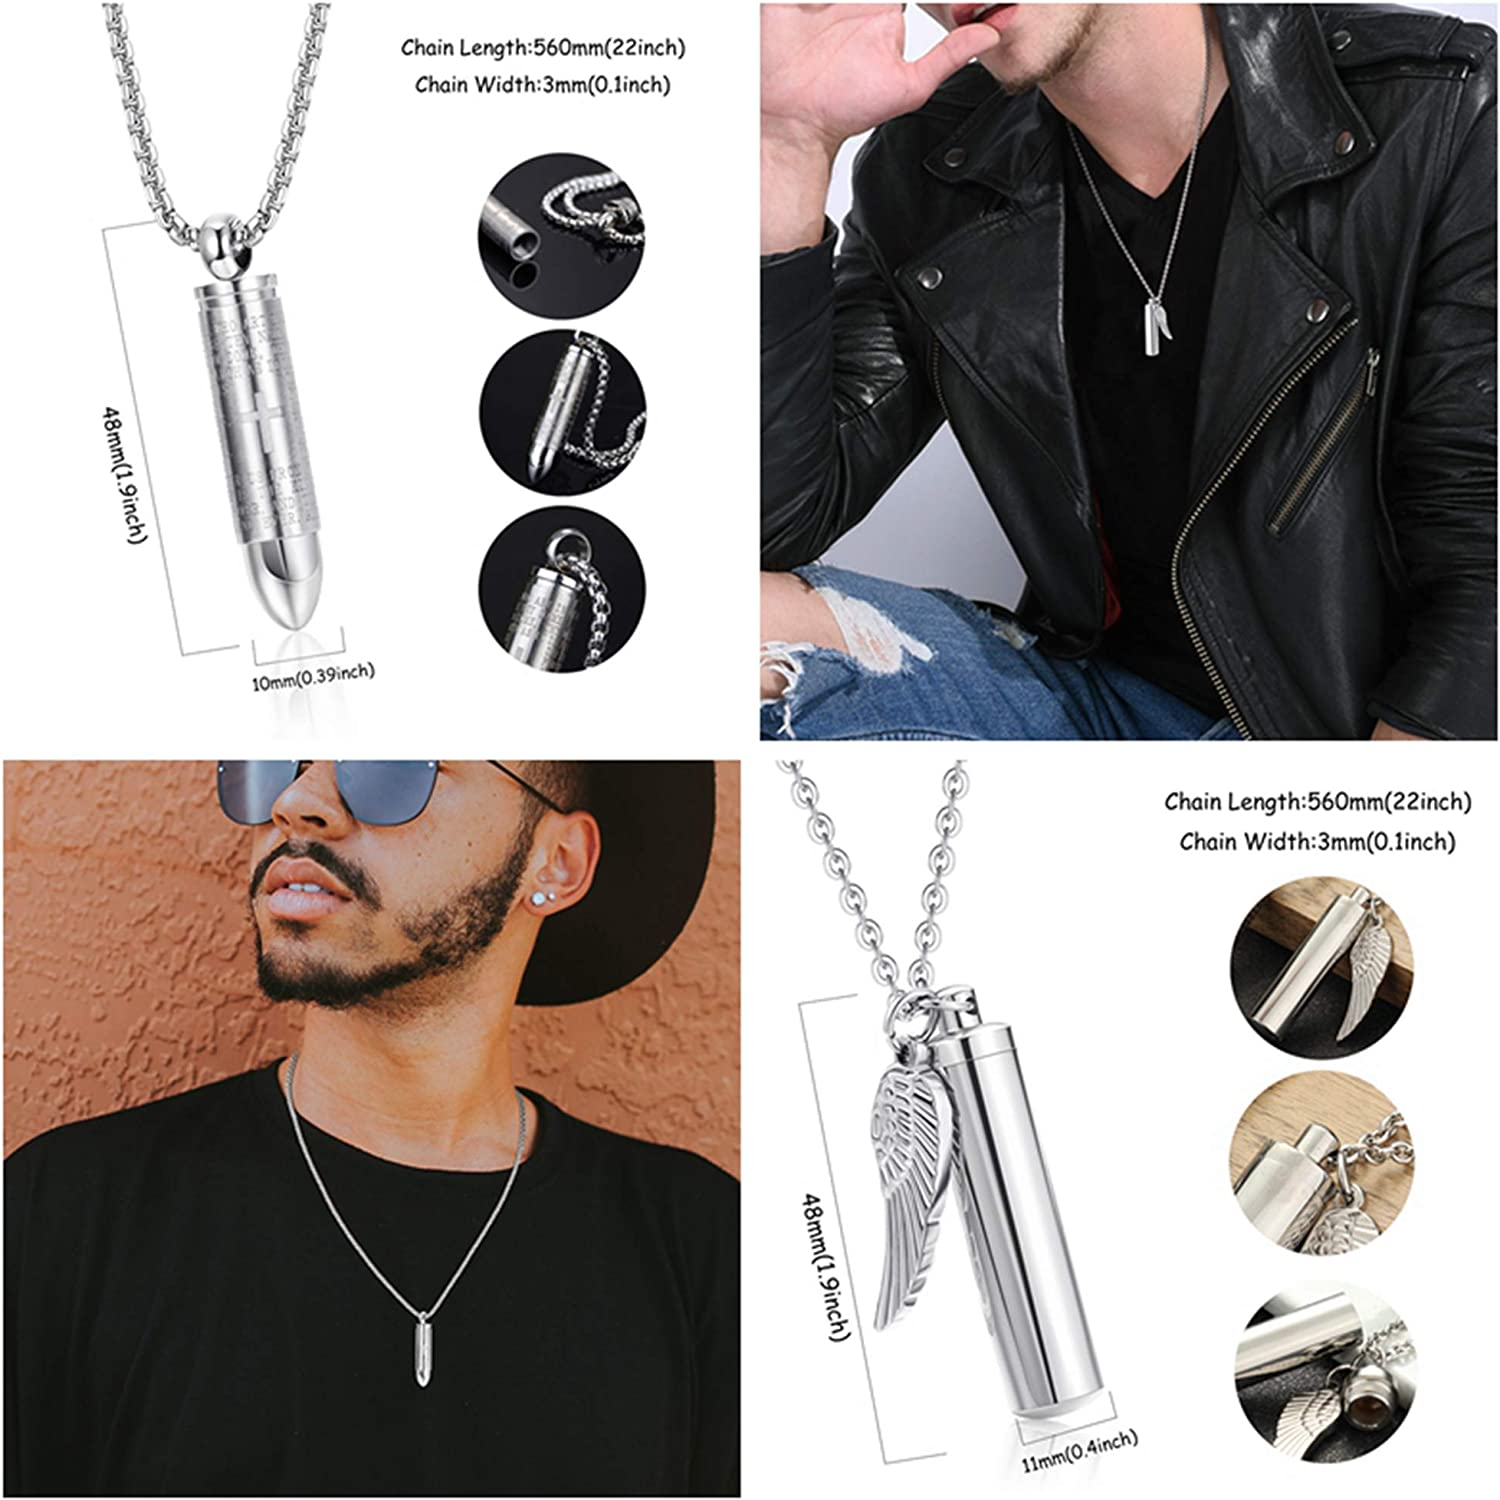 sailimue 2 Pcs Mens Cylinder Cremation Urn Necklace Stainless Steel Angel Wing Charm Memorial Urn Necklace Bullet Pendant Urn Ashes Necklace Cross Lords Prayer 22 Inch Chain